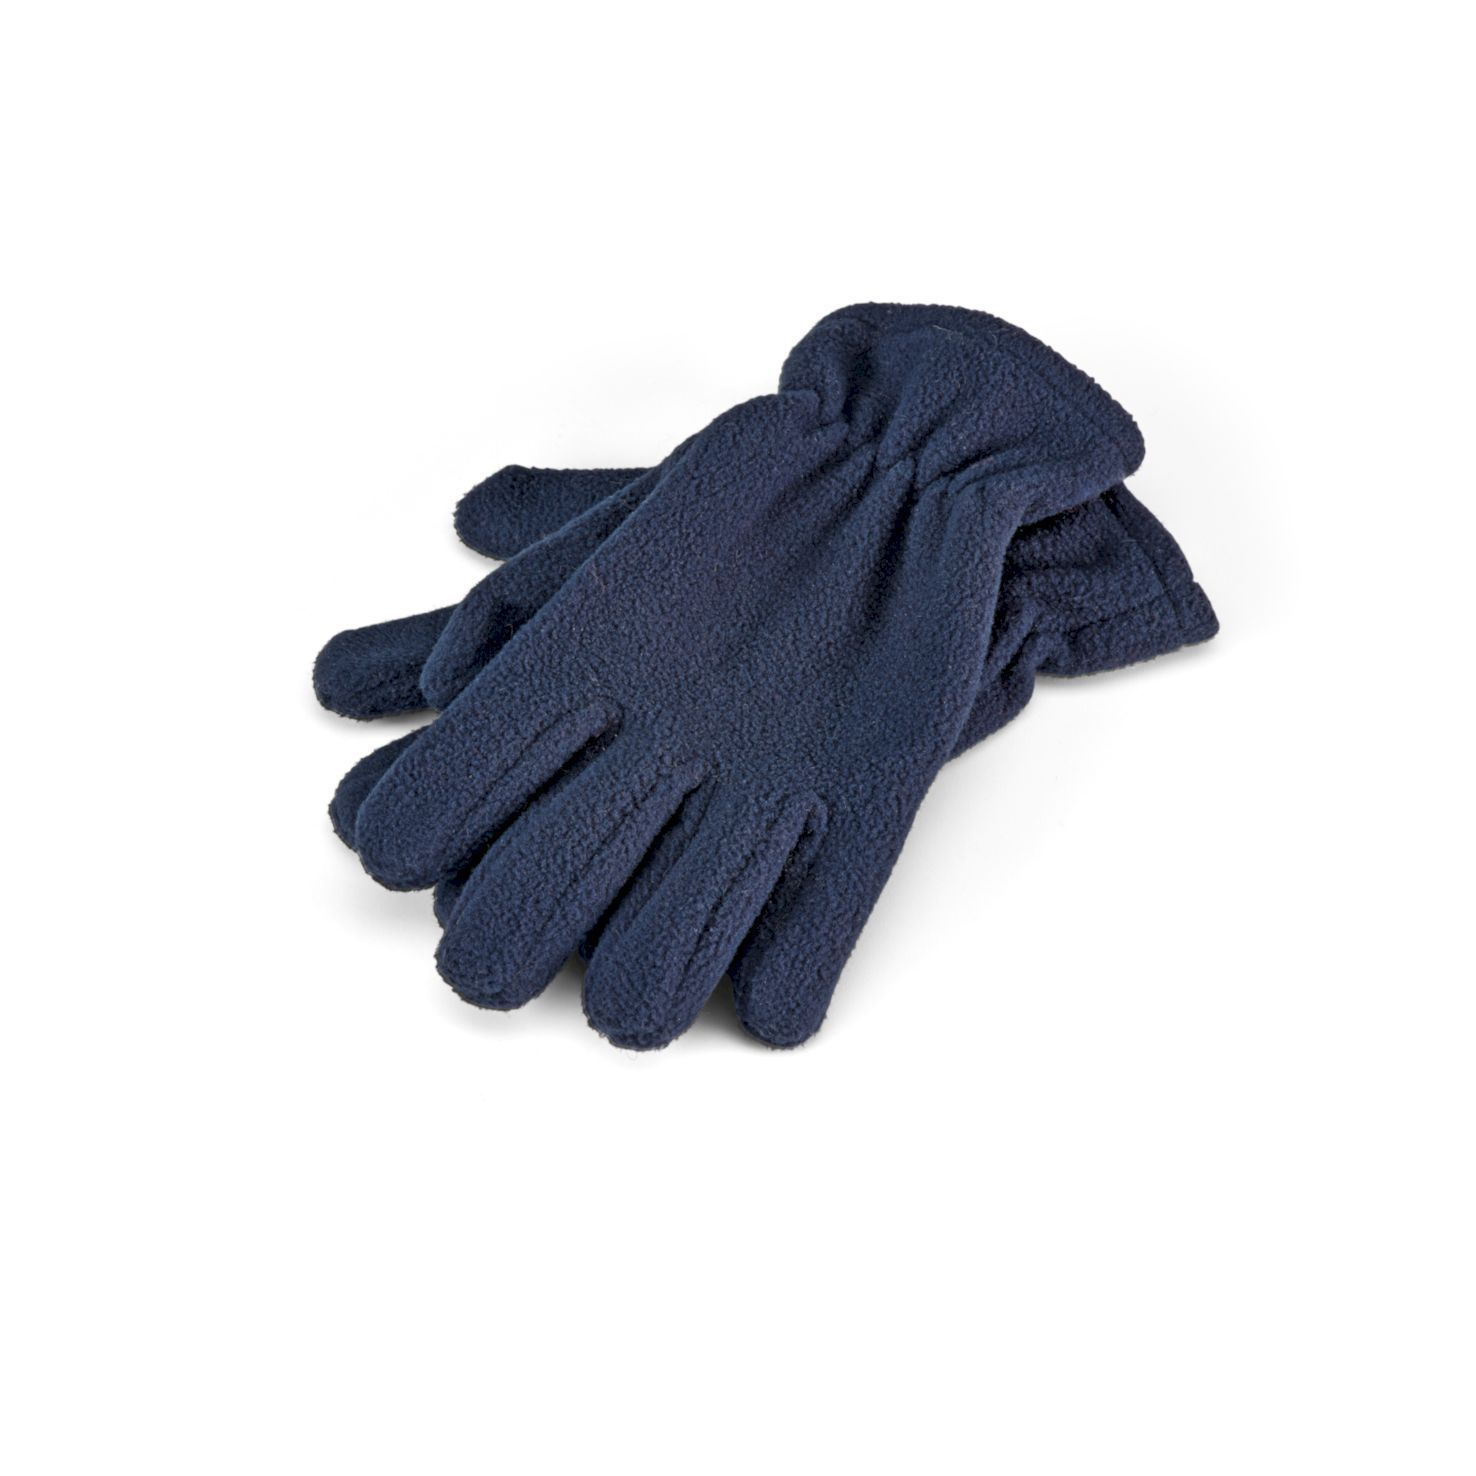 Blauwe Handschoenen | Polar fleece